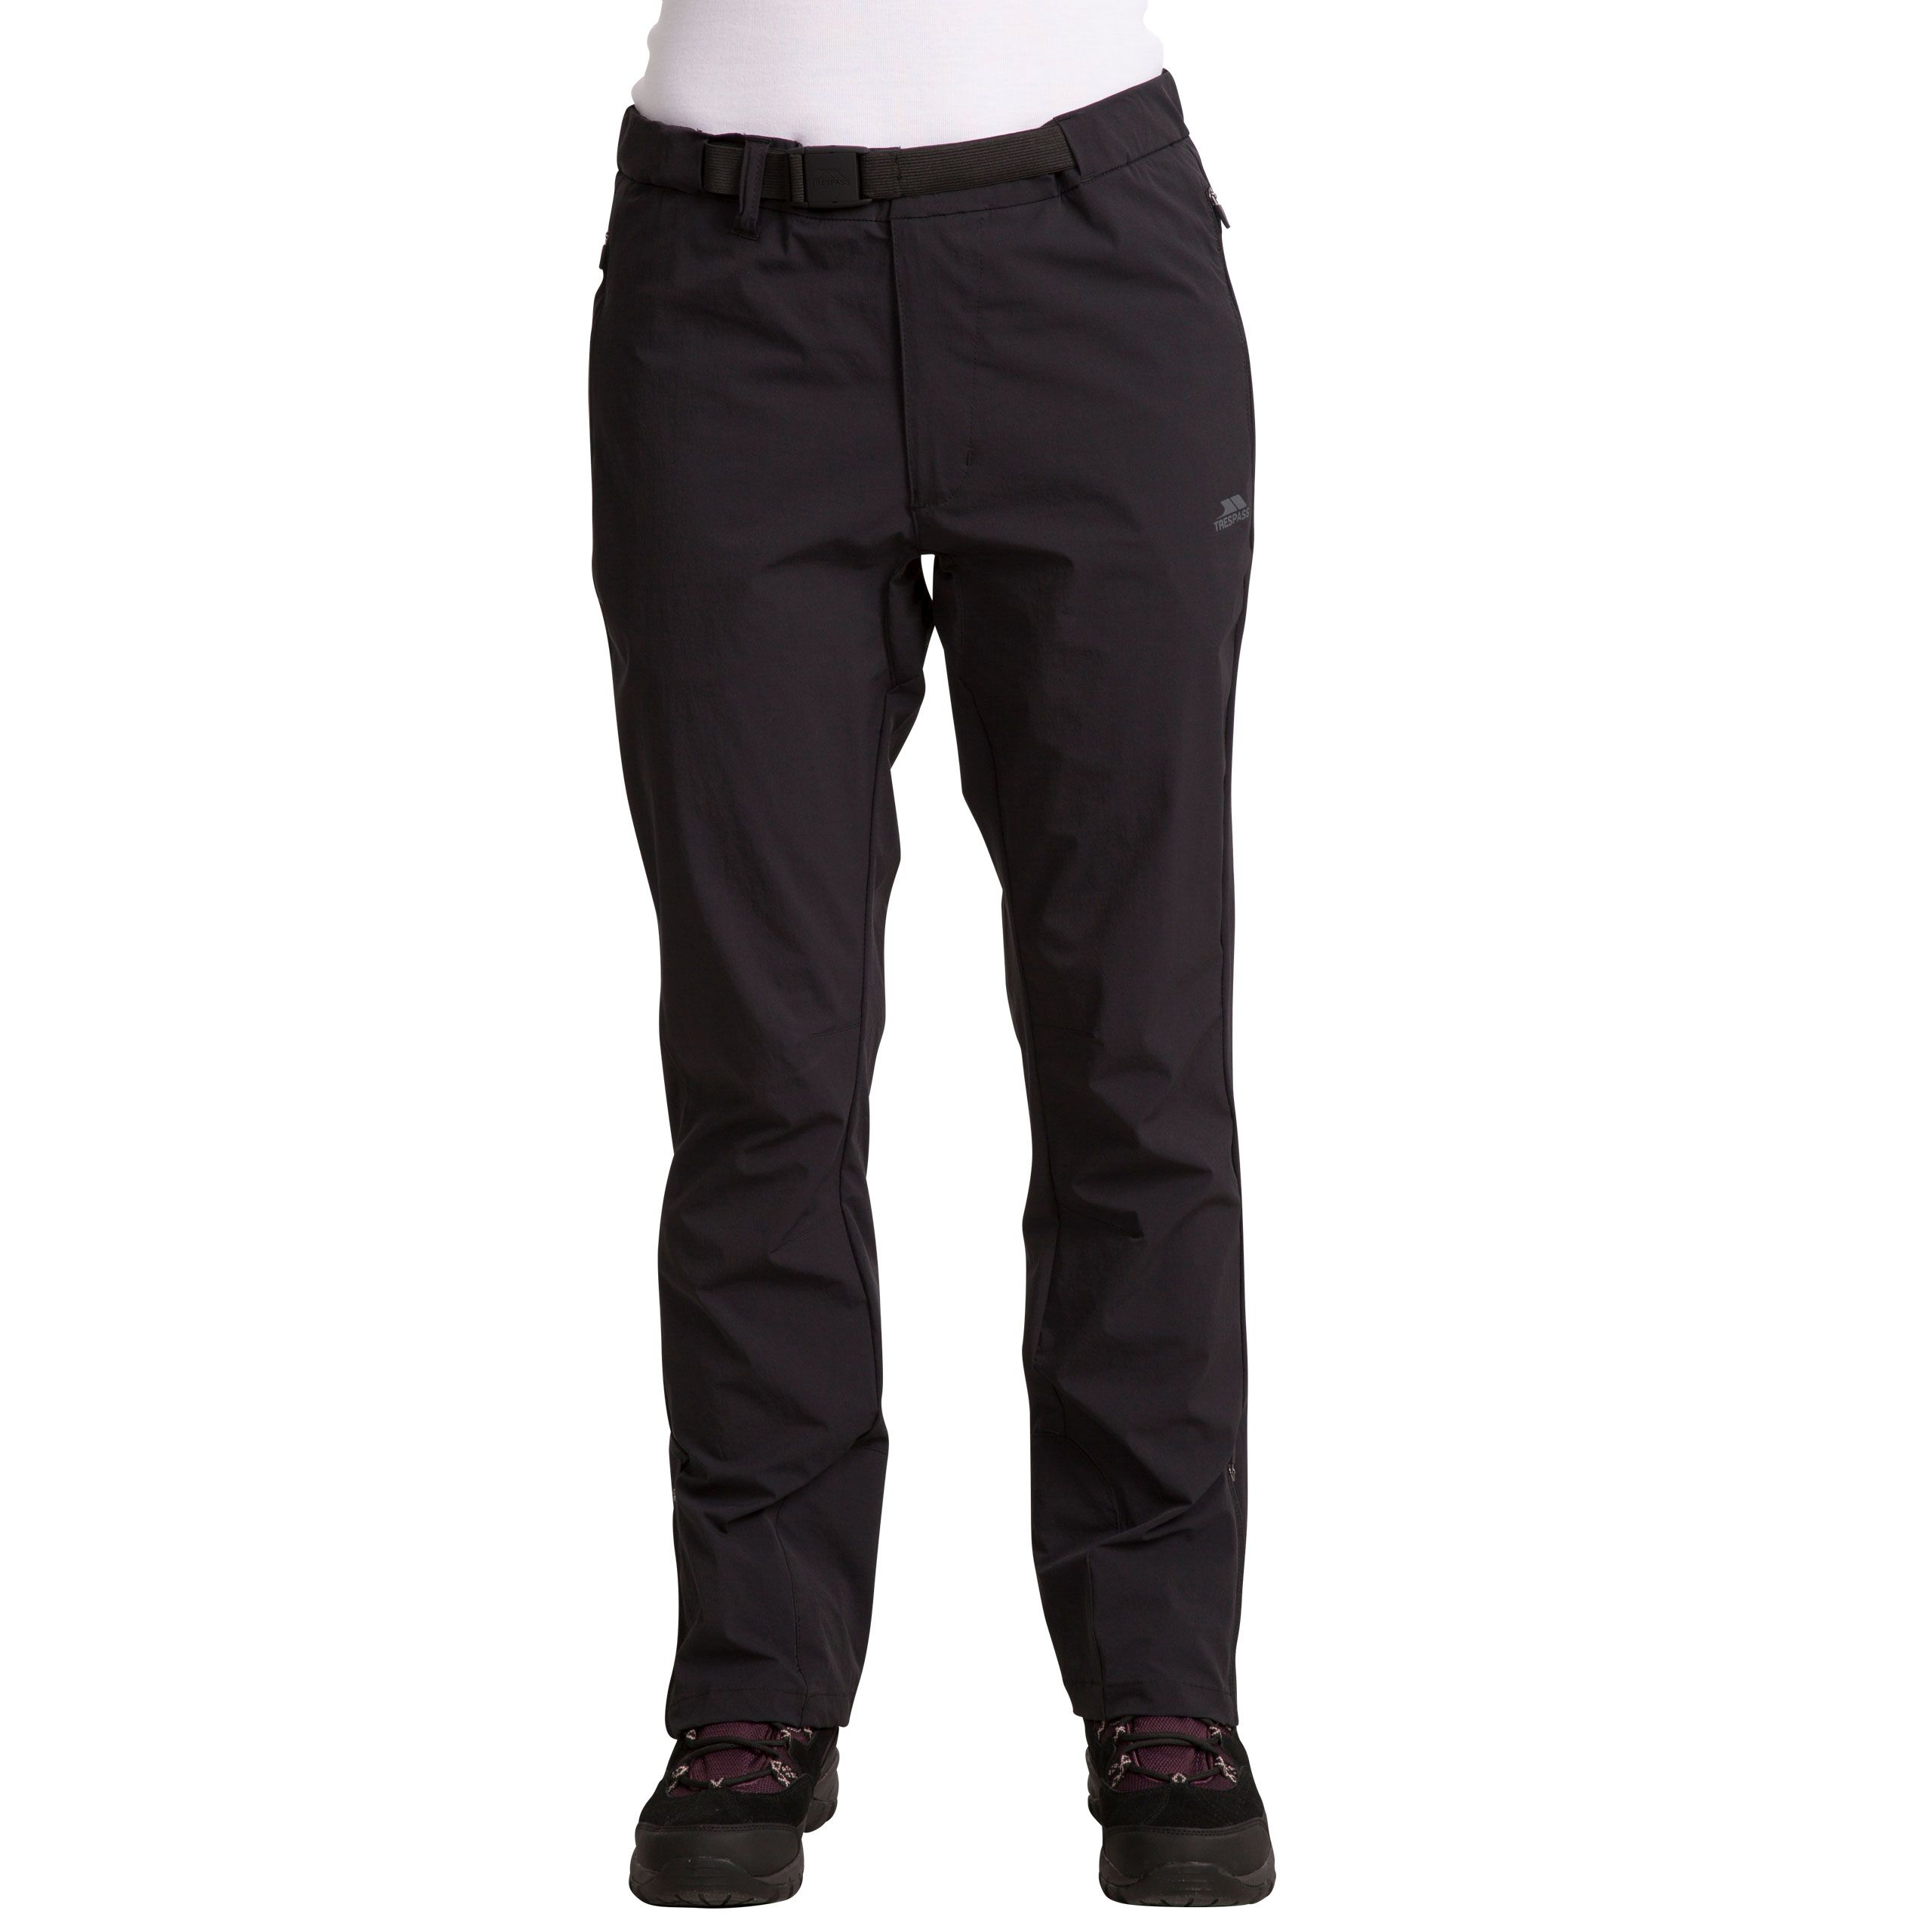 Stormlight Womens Quick Dry Walking Trousers